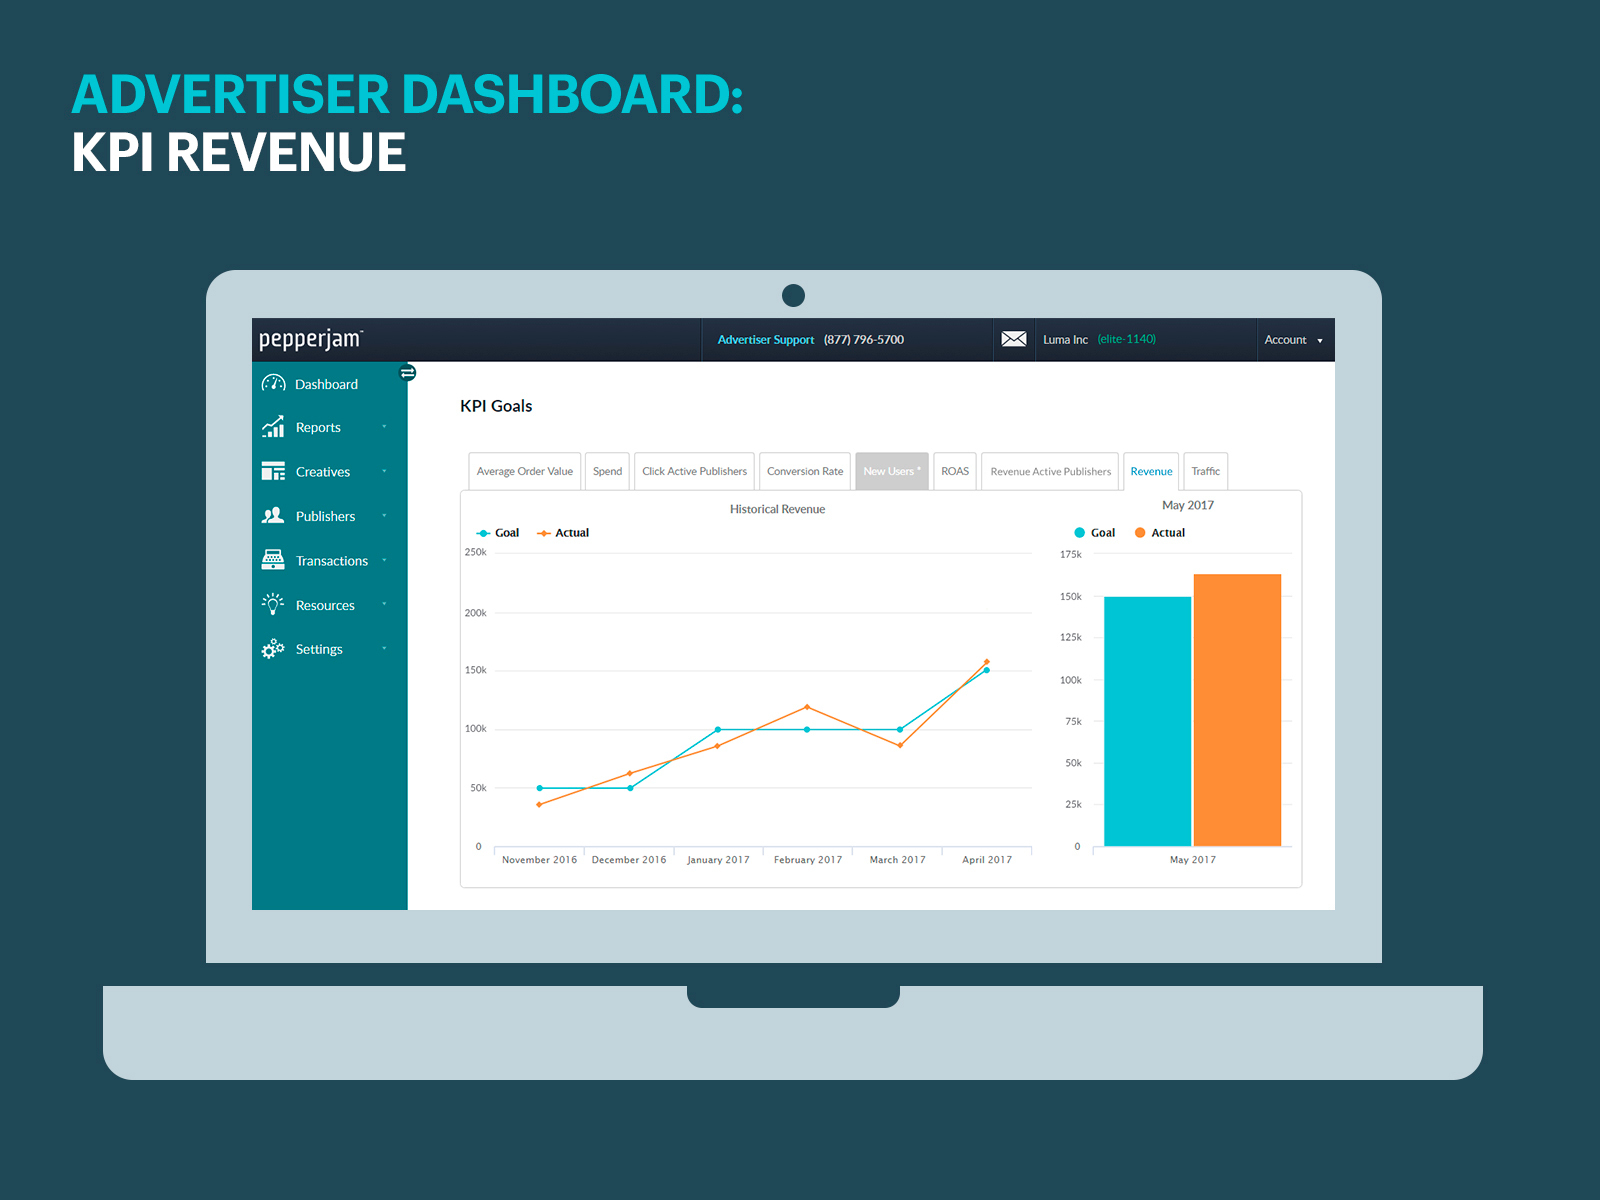 Pepperjam KPI Revenue Dashboard | www.pepperjam.com